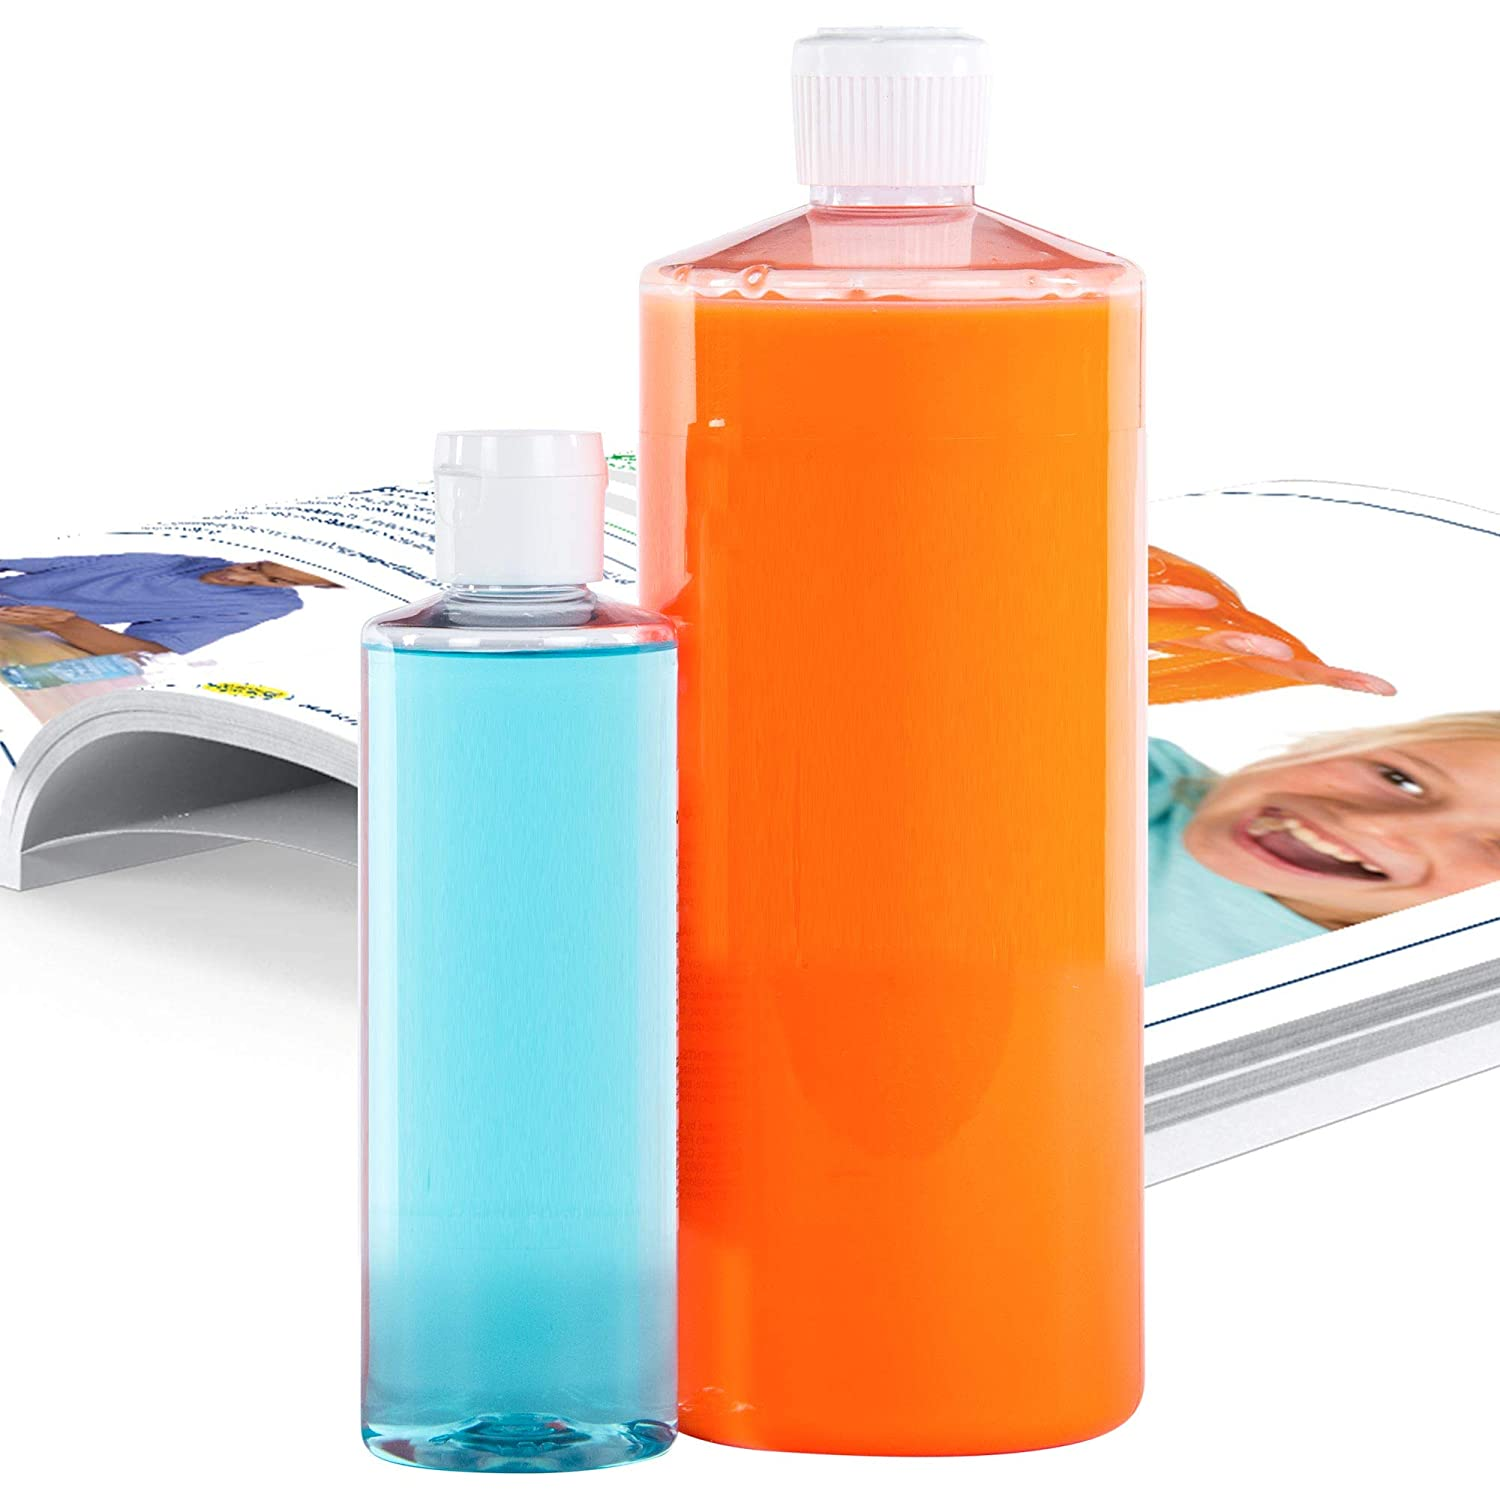 Steve Spangler Science DIY Slime Art Kit, Tangerine Orange – Easy to Create, Non-Glue Slime Formula, Makes an Excellent STEM Activity for Classrooms and Home Use (33.8 oz)